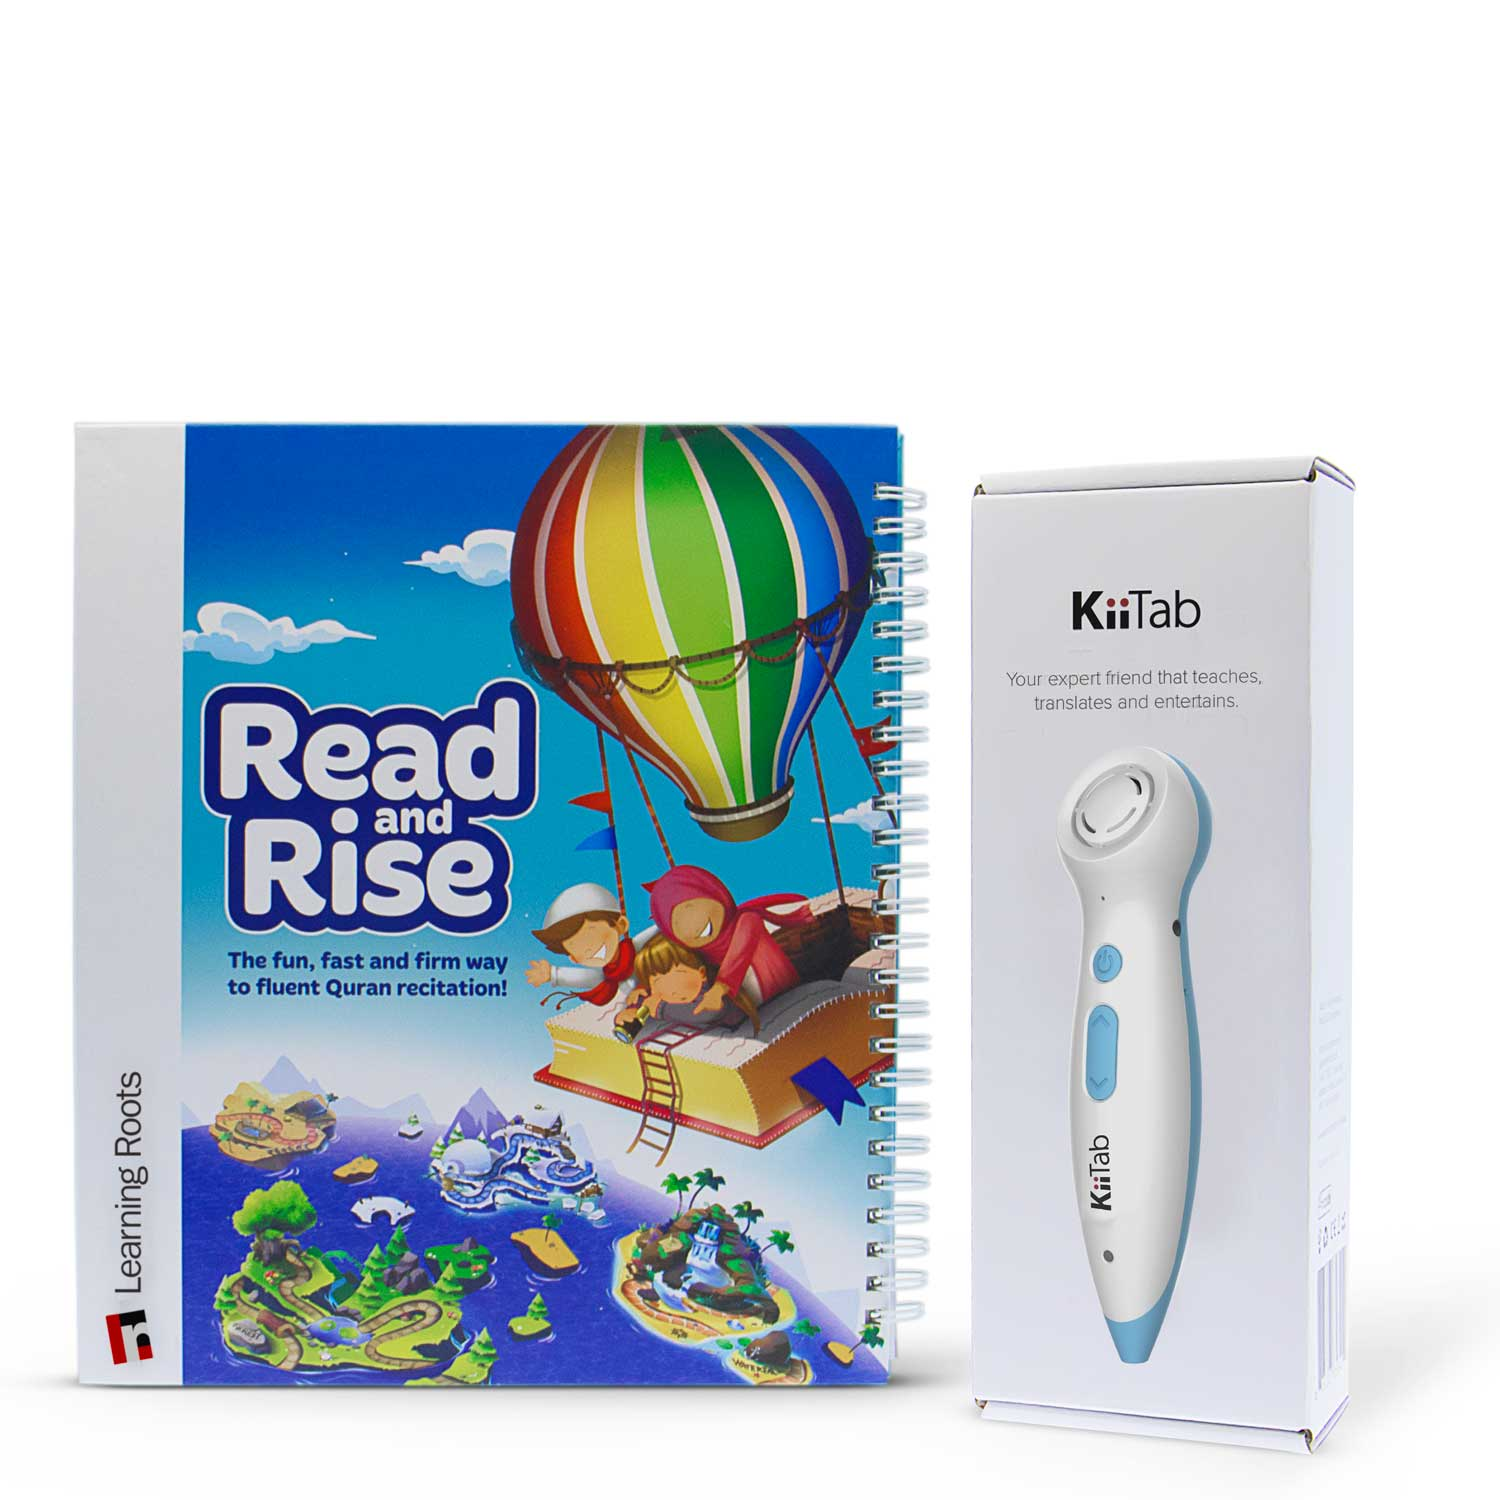 Buy Islamic Children's Books, Stories, Games, and Toys